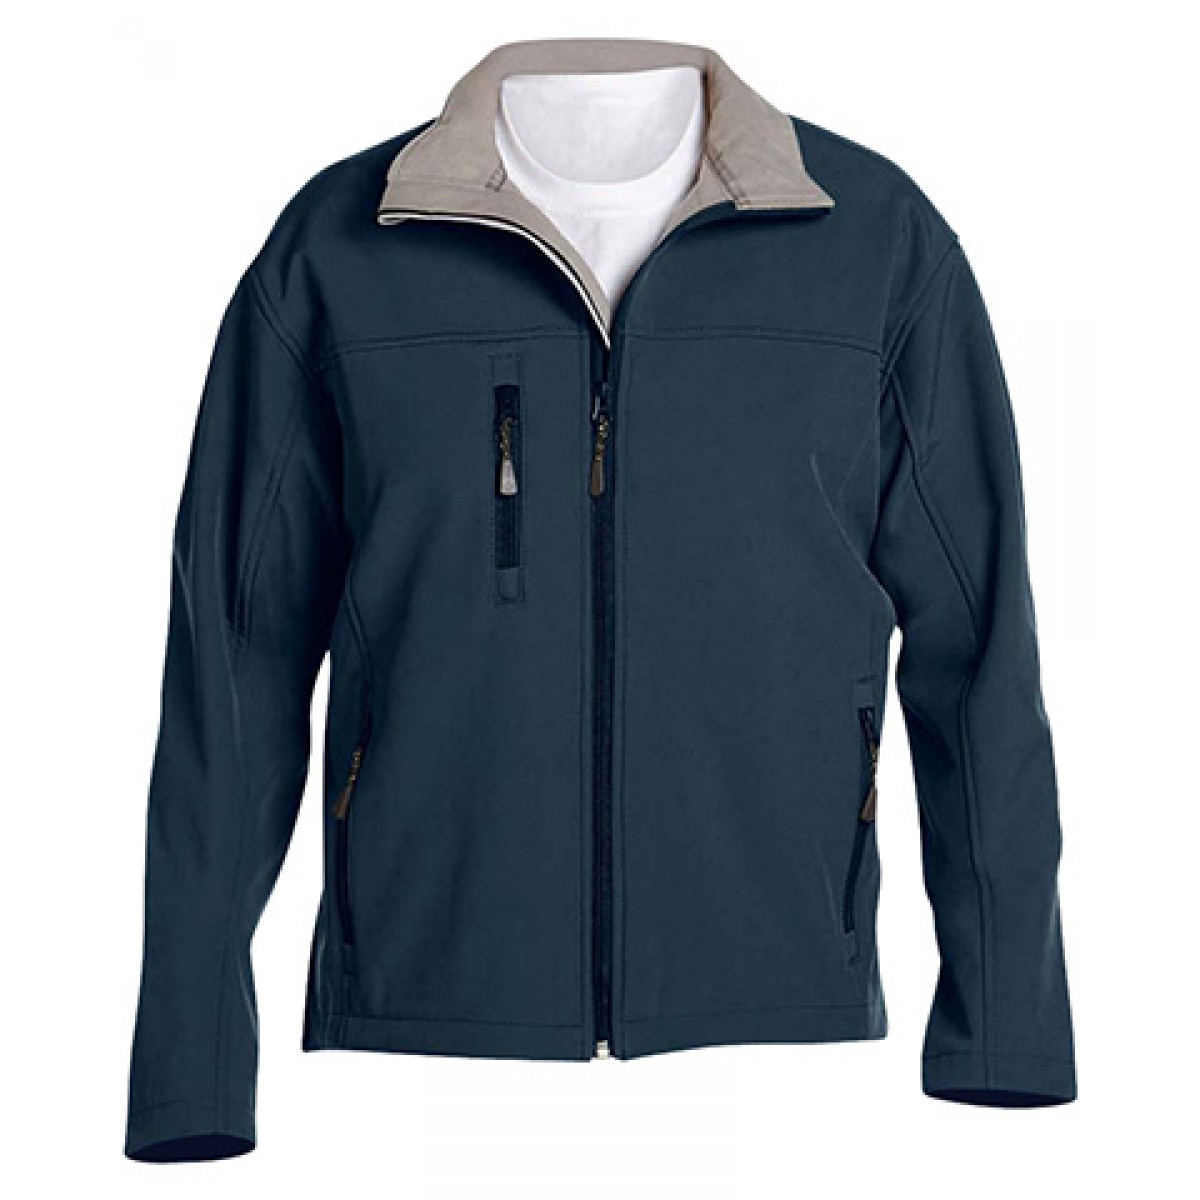 Men's Soft Shell Jacket-Navy-3XL